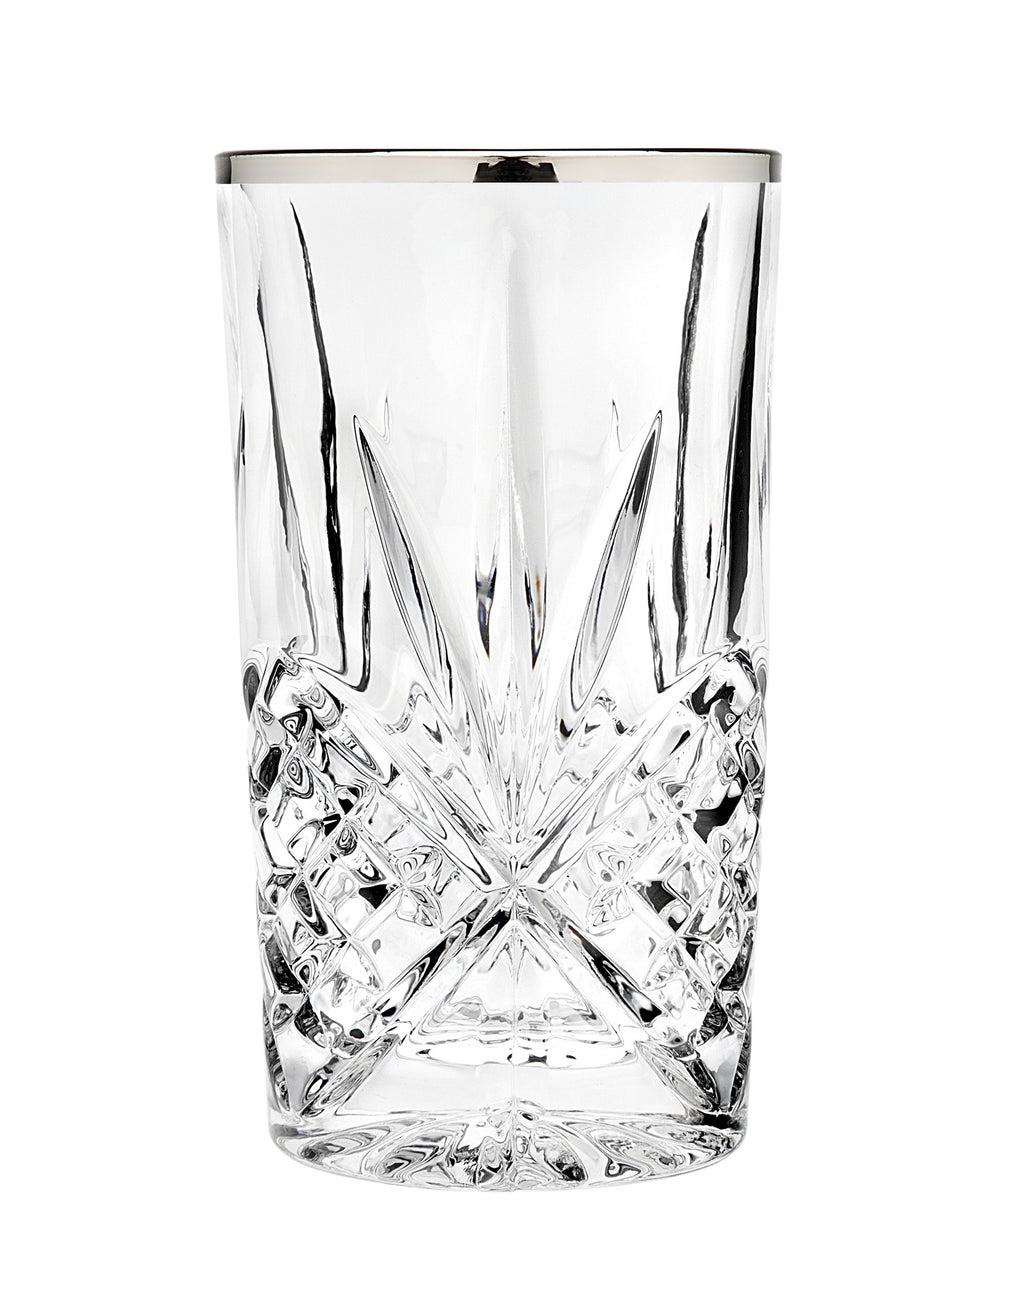 Dublin Set of 4 Highball Glasses - Platinum